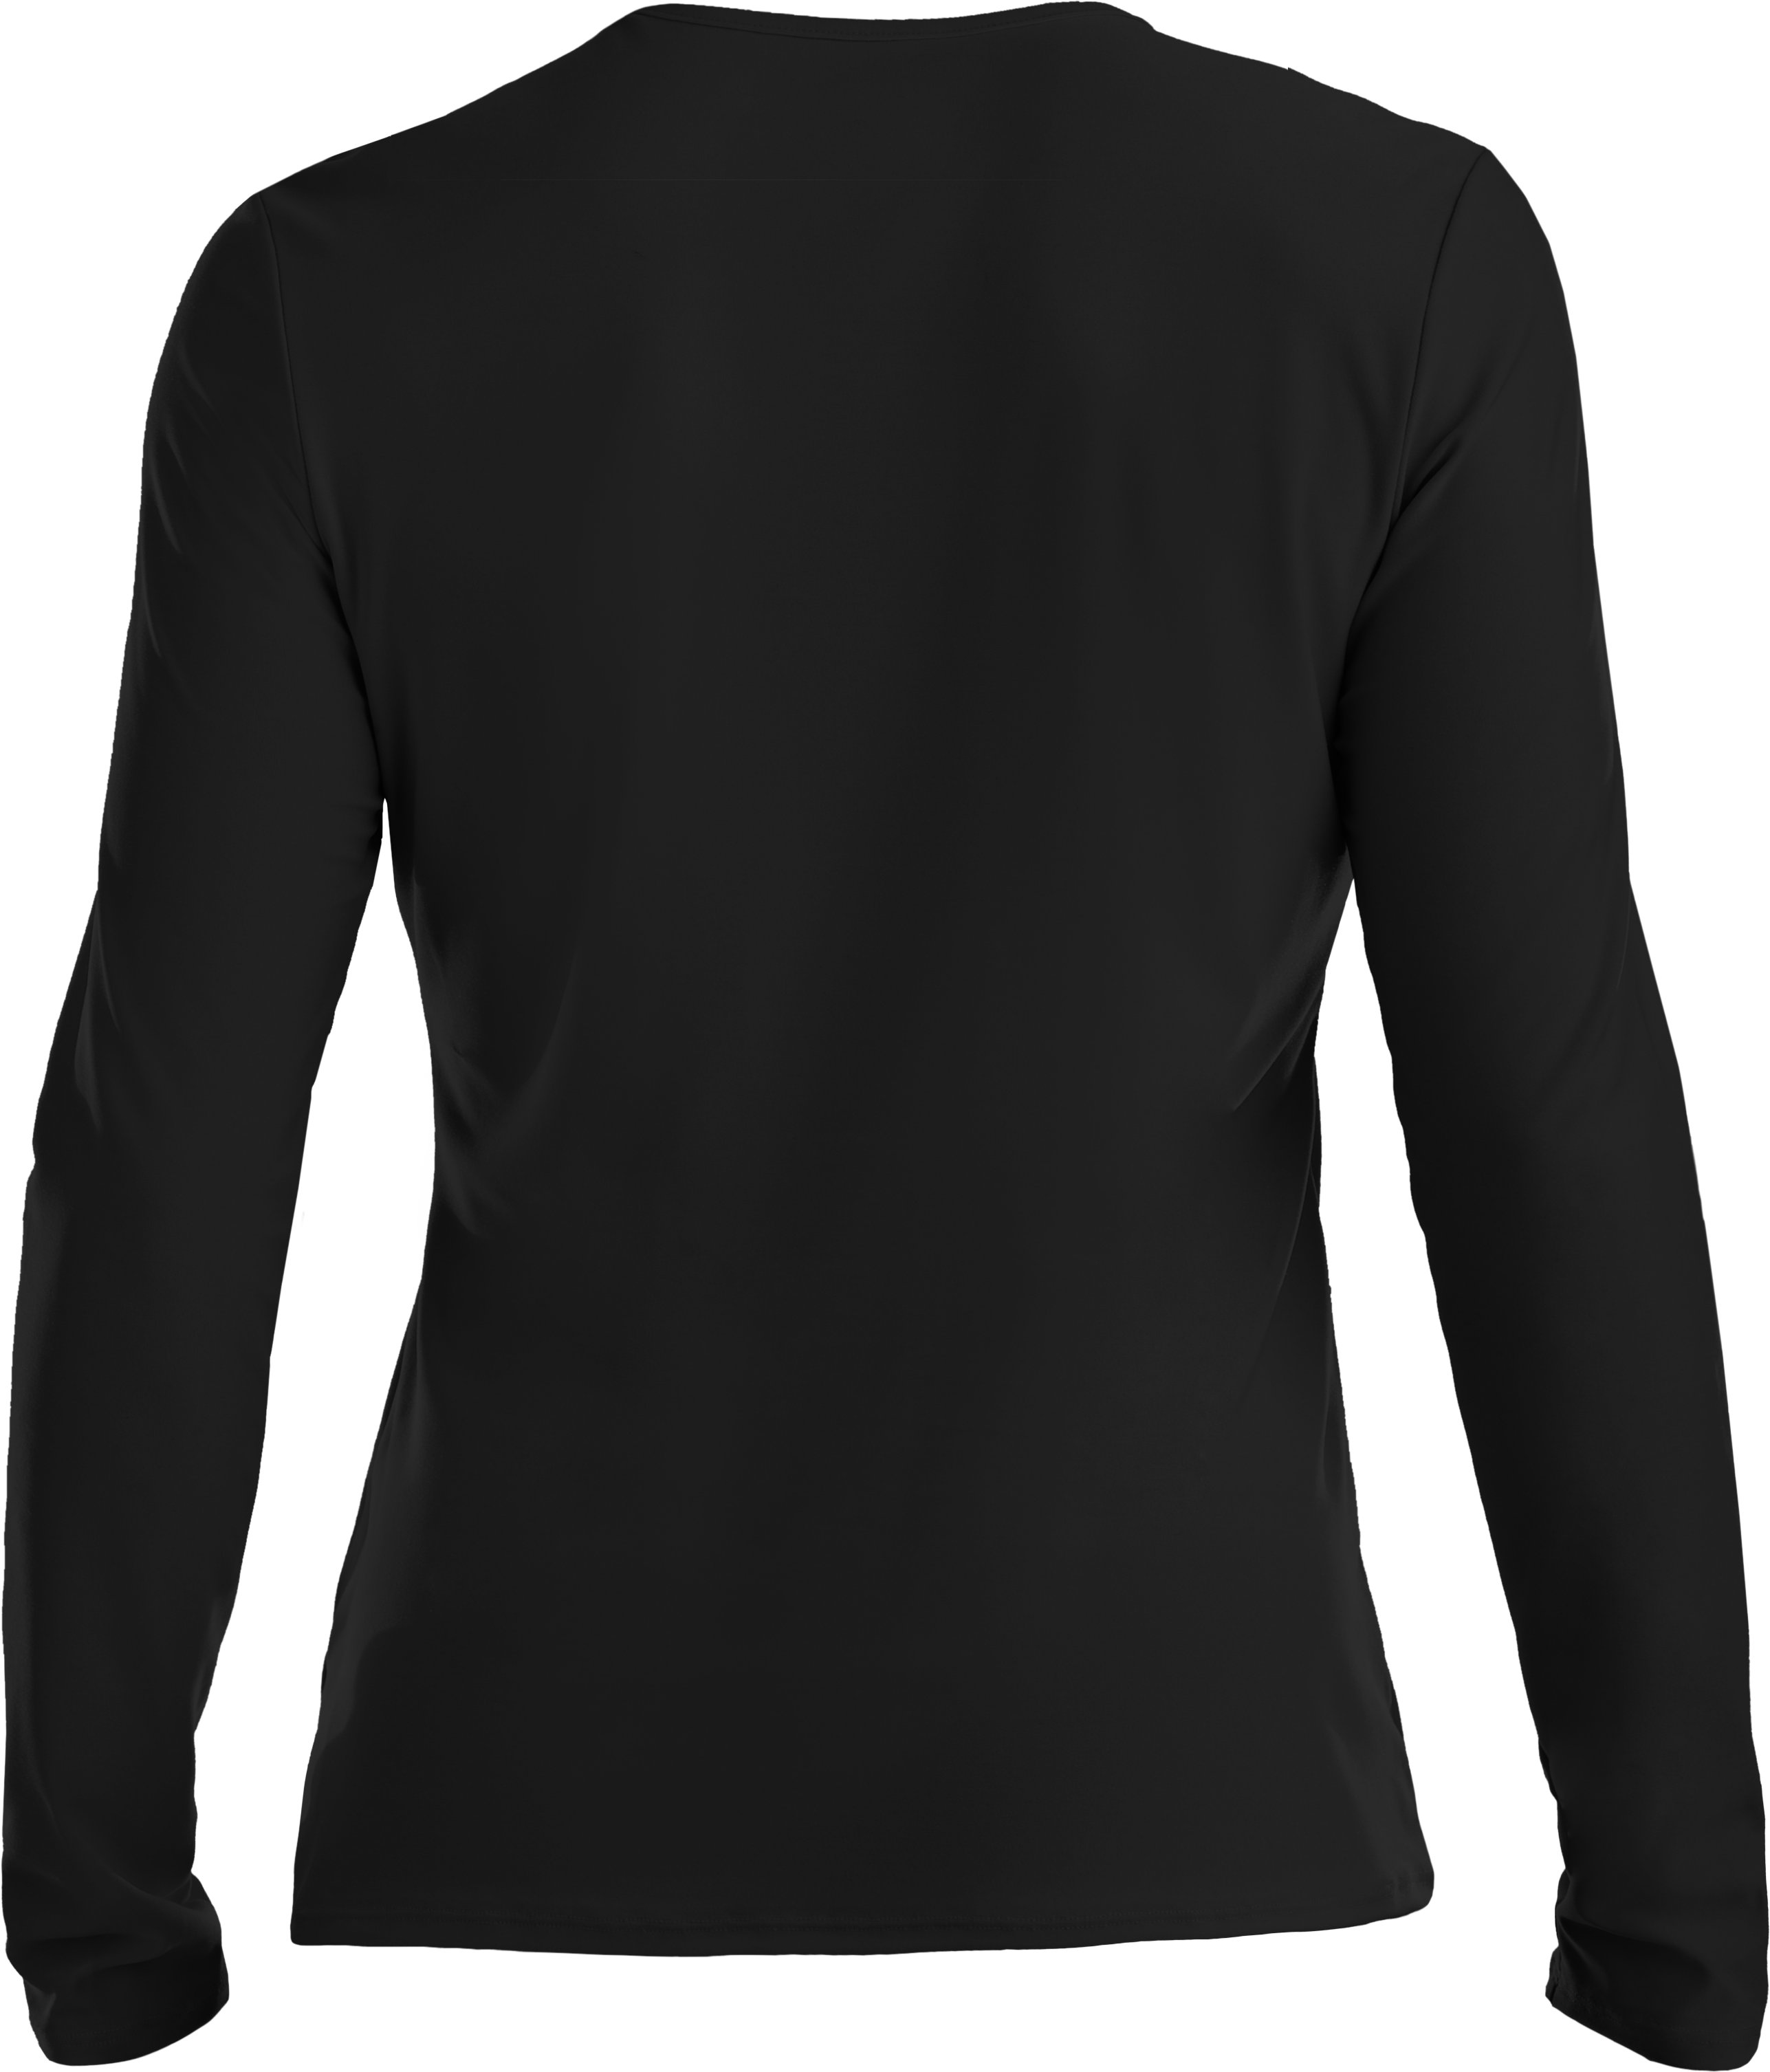 Women's Locker Long Sleeve T-Shirt, Black